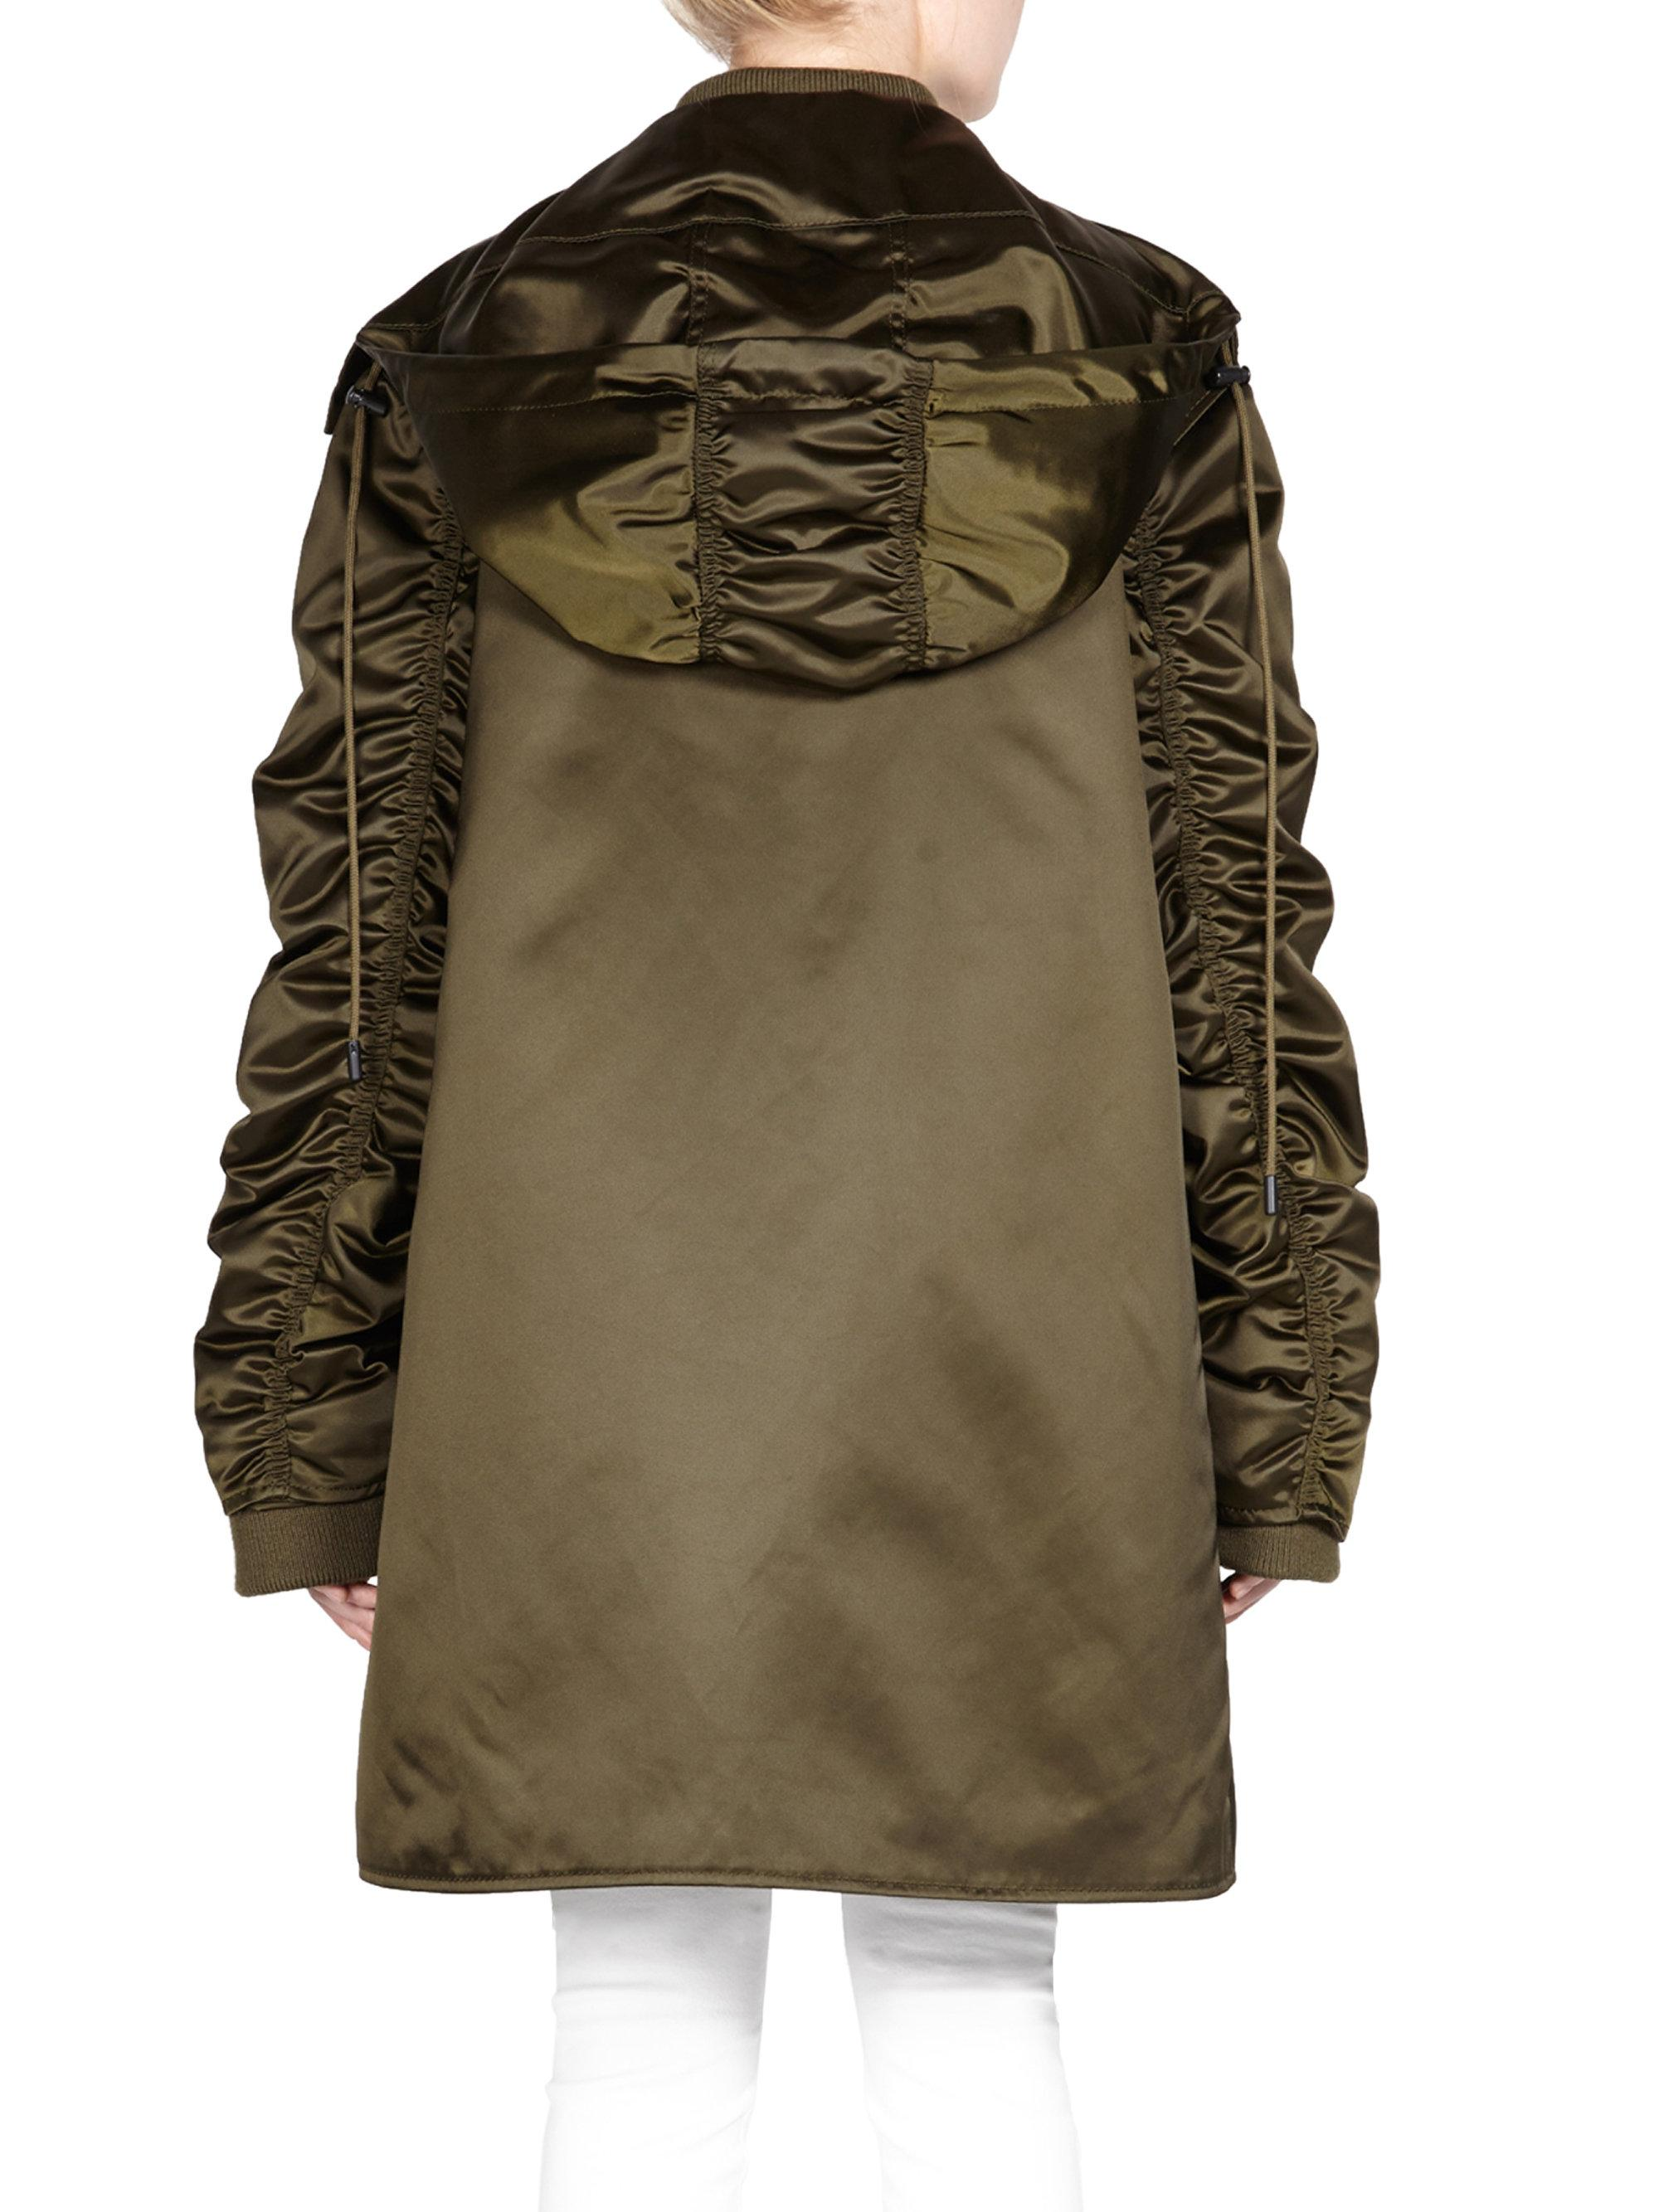 Lyst - Acne Long Bomber Jacket in Green